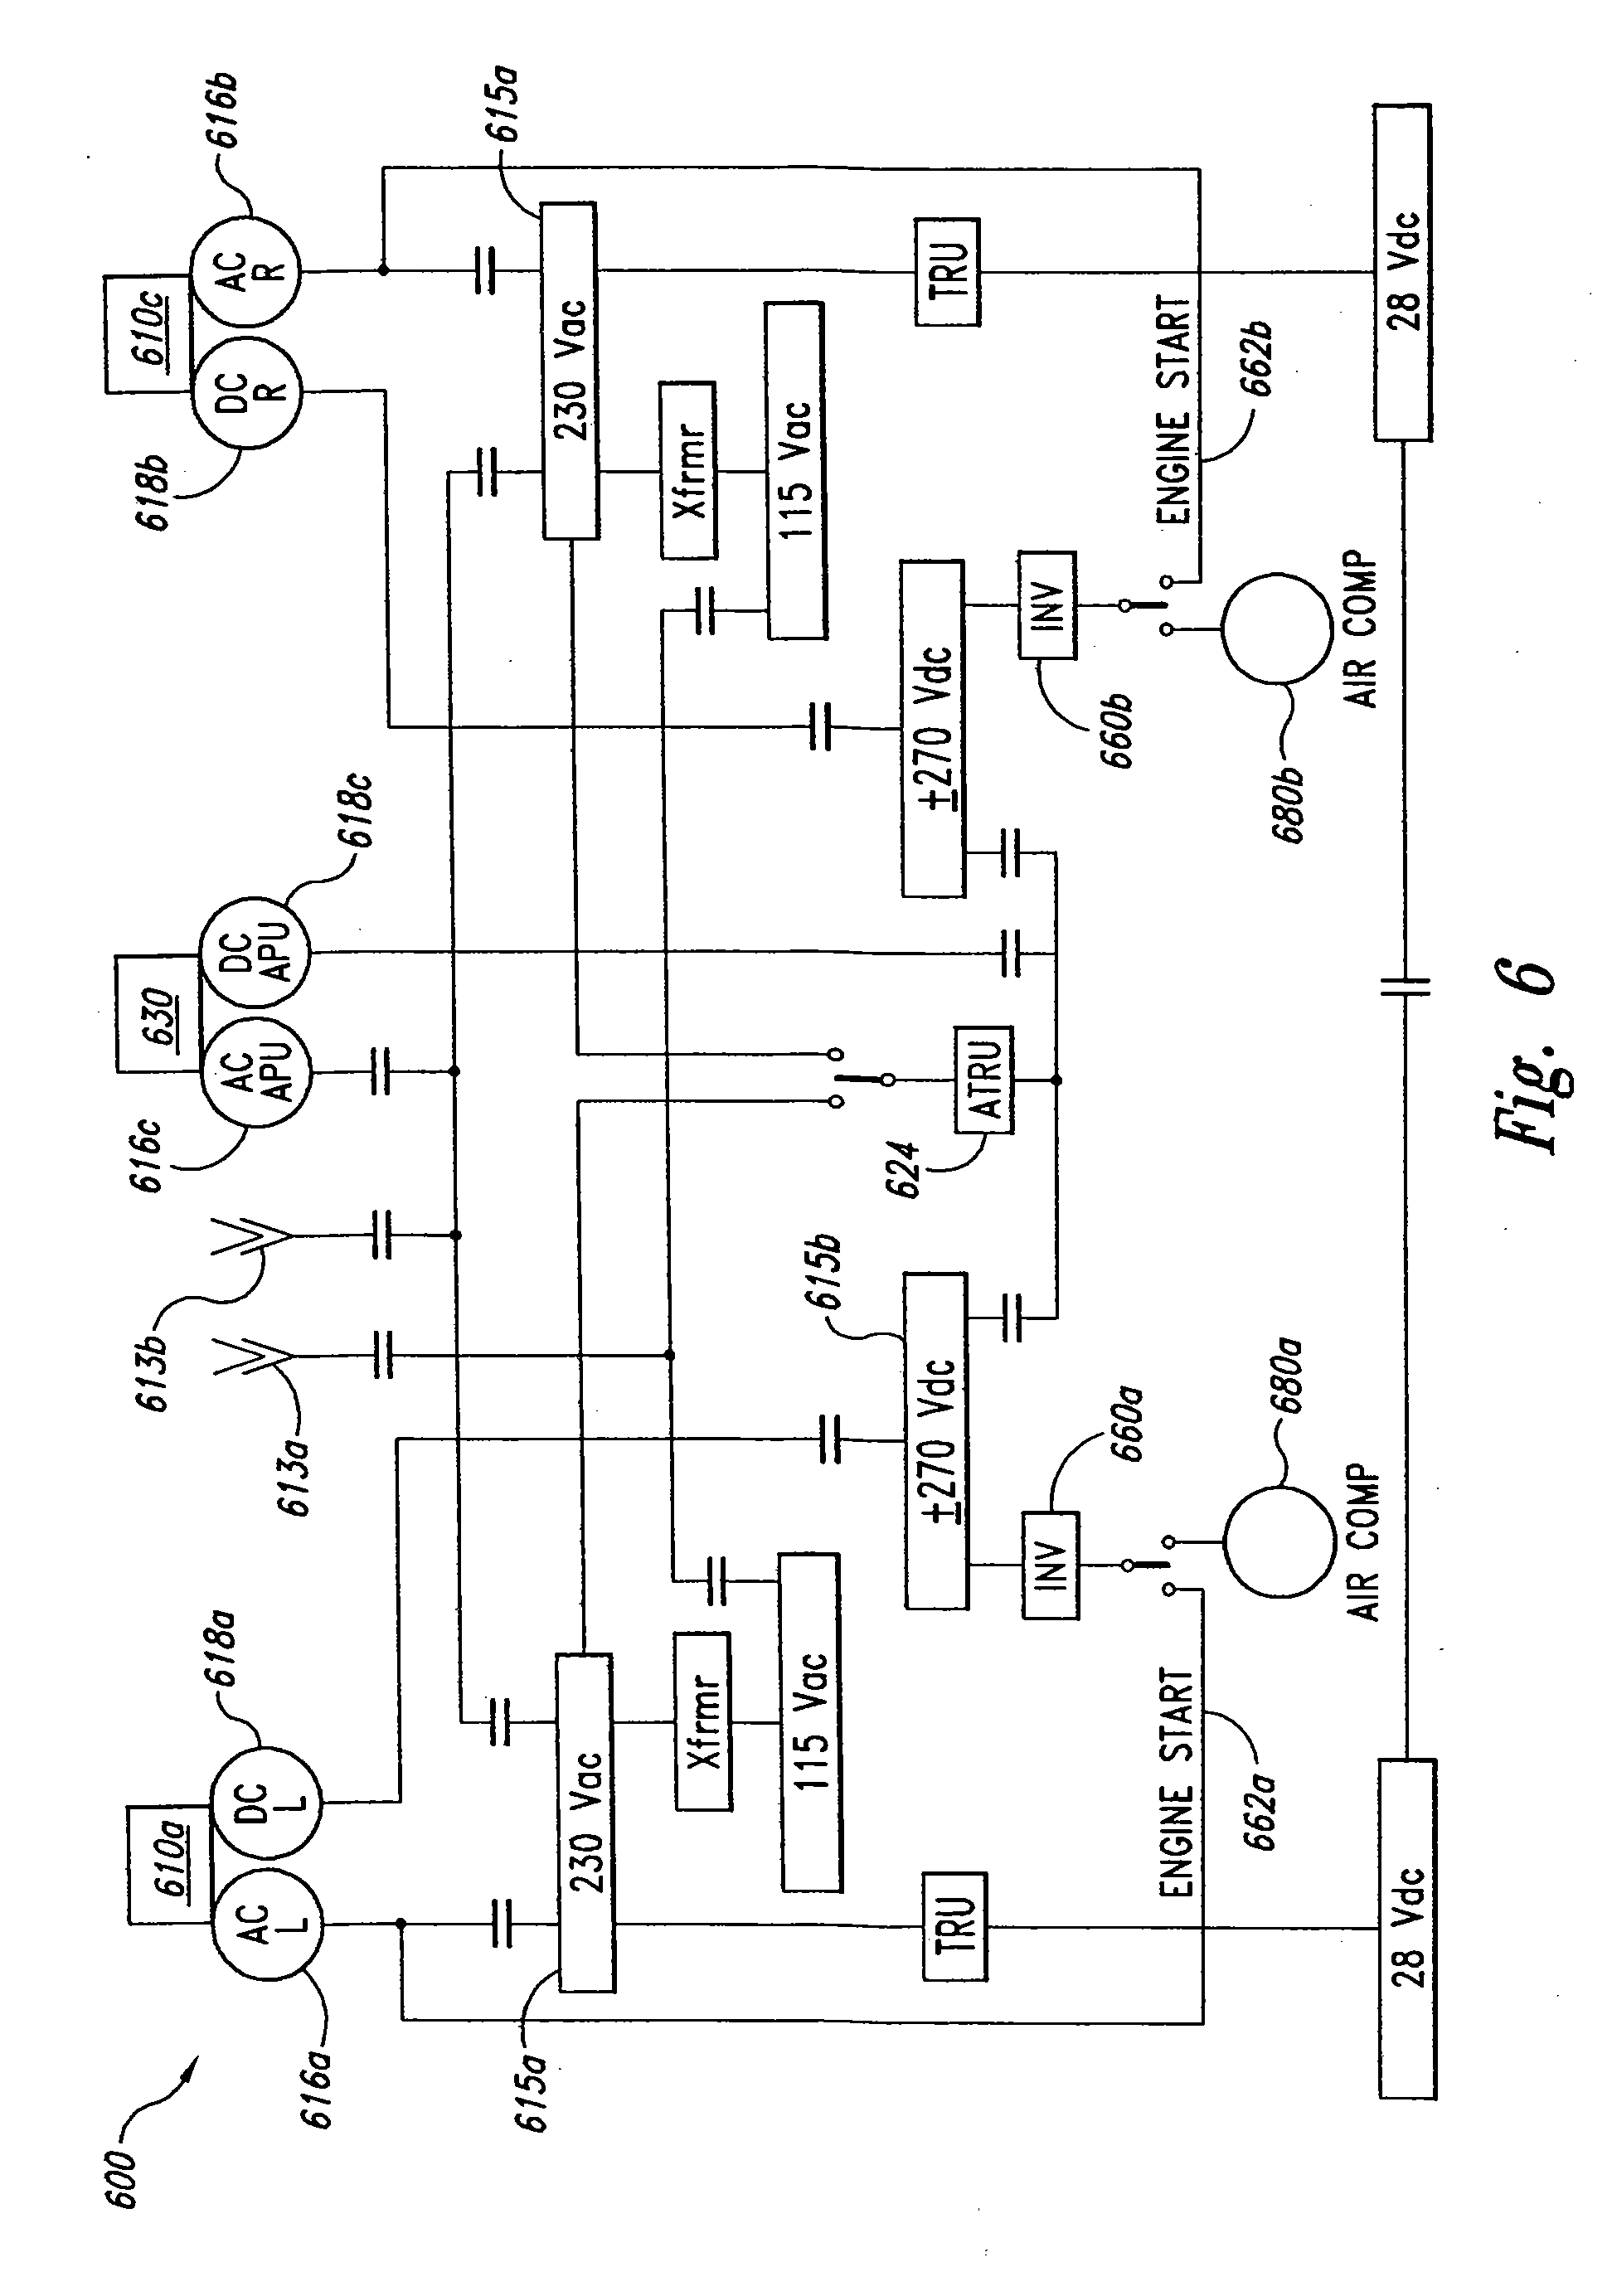 Team likewise Avionics And Instruments furthermore US20070267540 as well Airbus 747 Wiring Diagrams likewise Turbine Engine Tools. on aircraft electrical and environmental systems